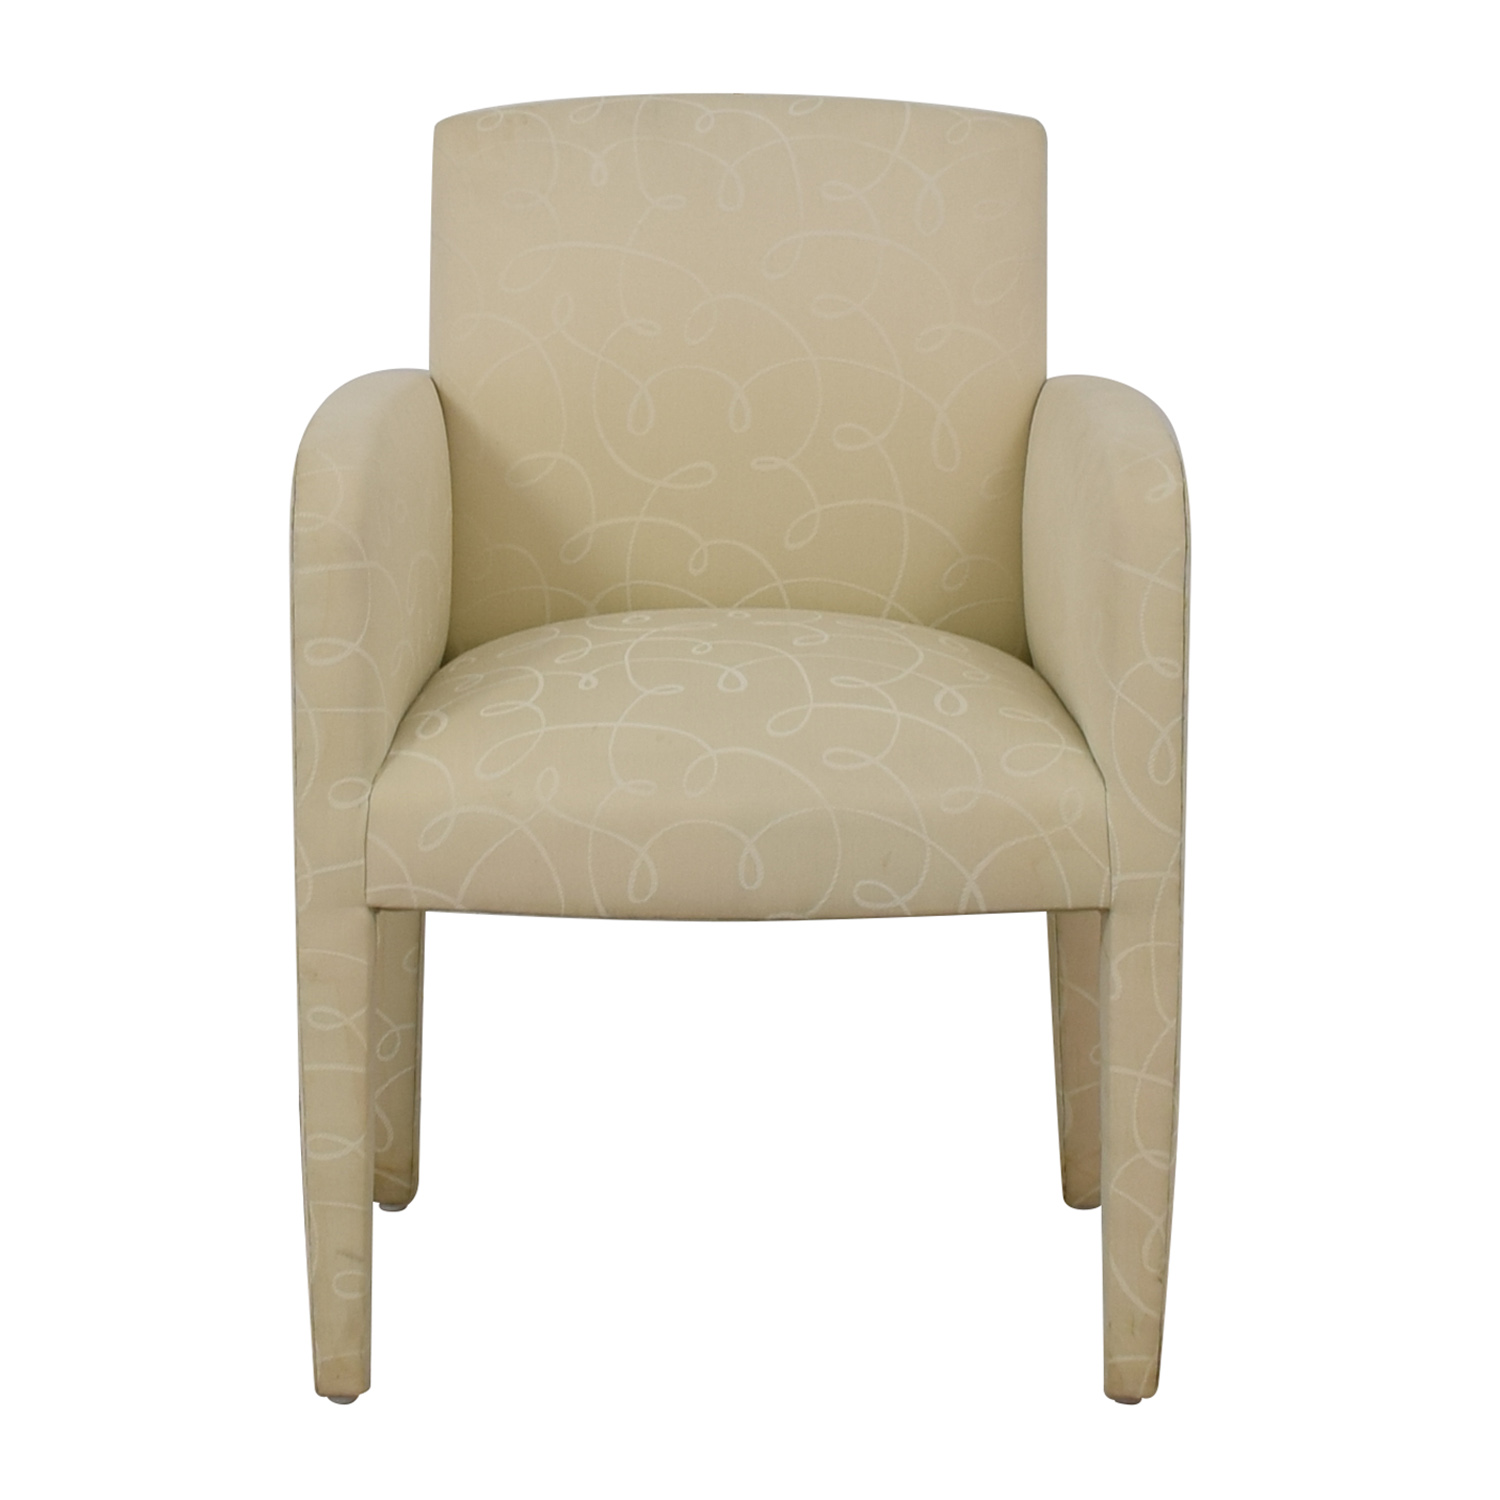 Upholstered Fabric Chair